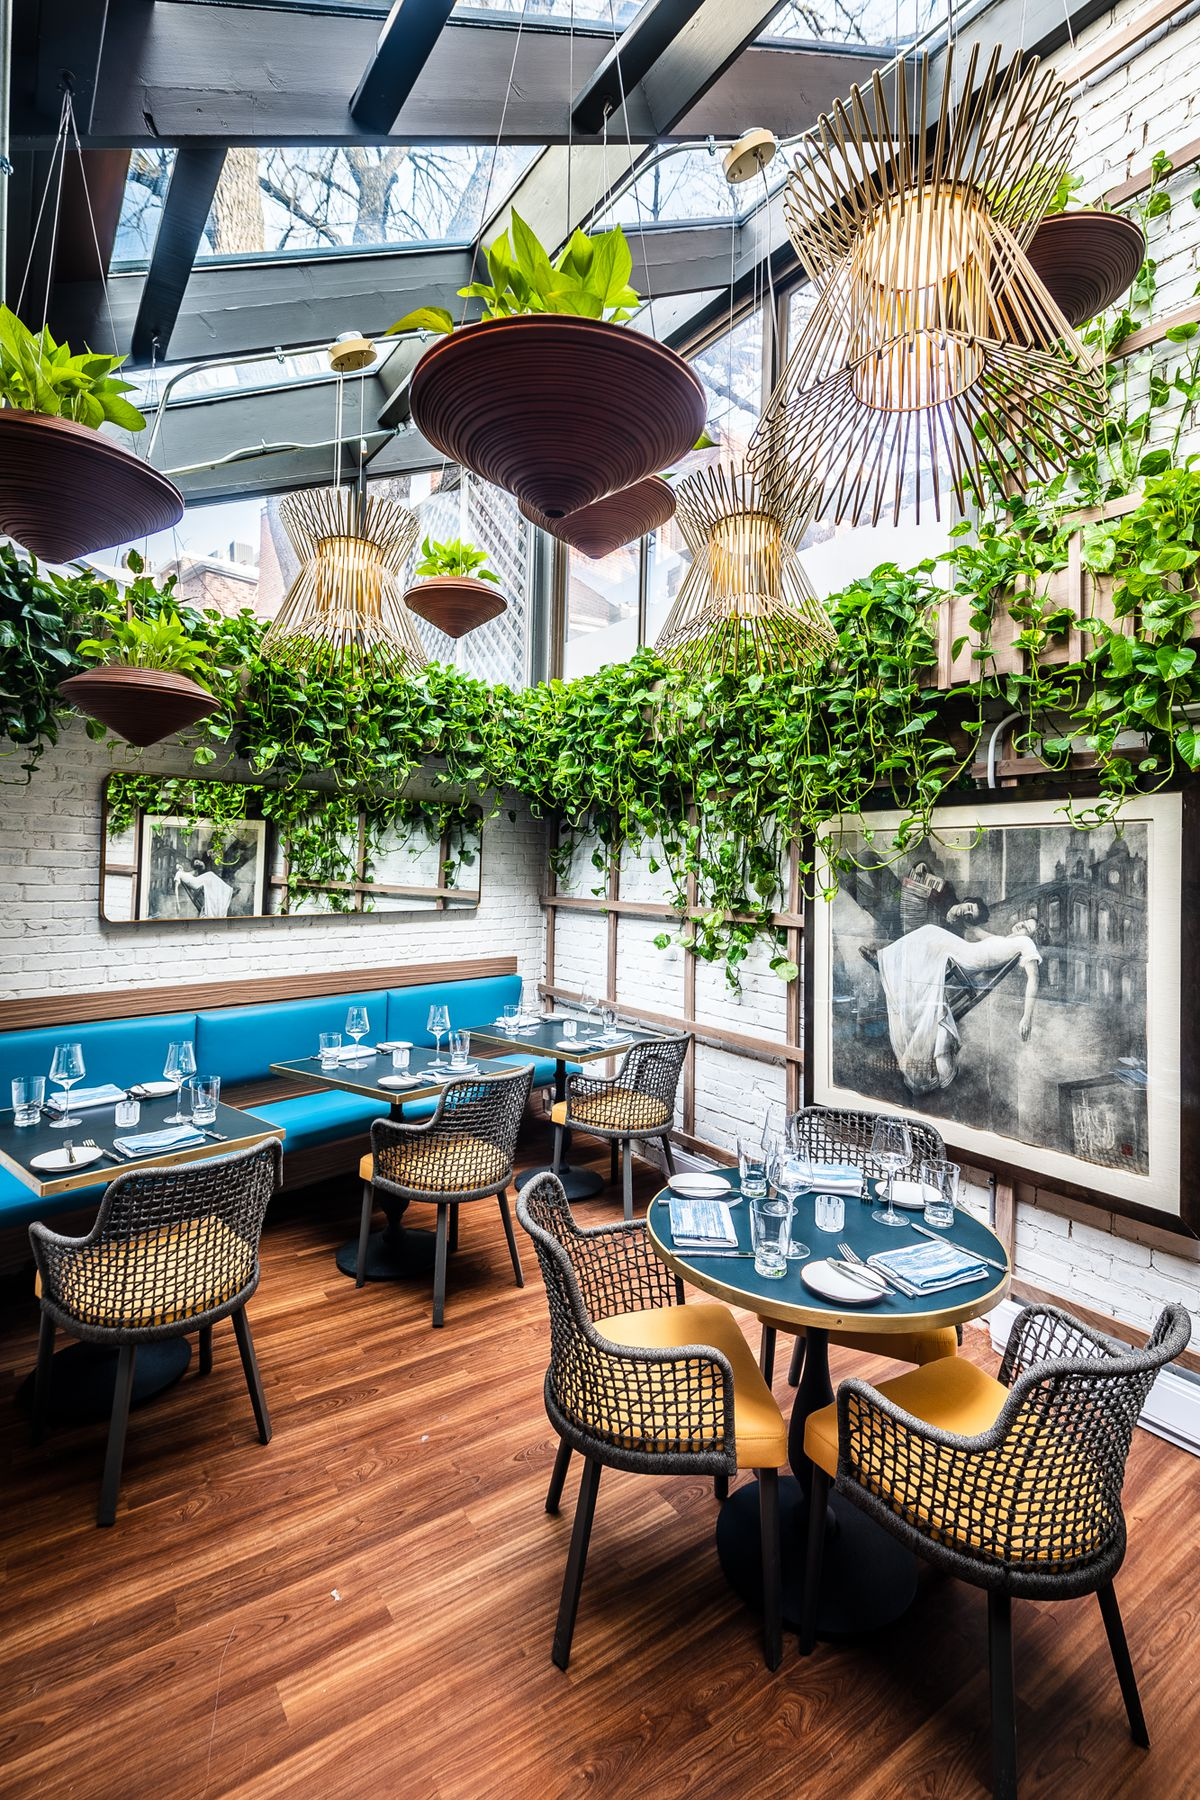 The Garden Room at Annabelle includes live plants and a skylight